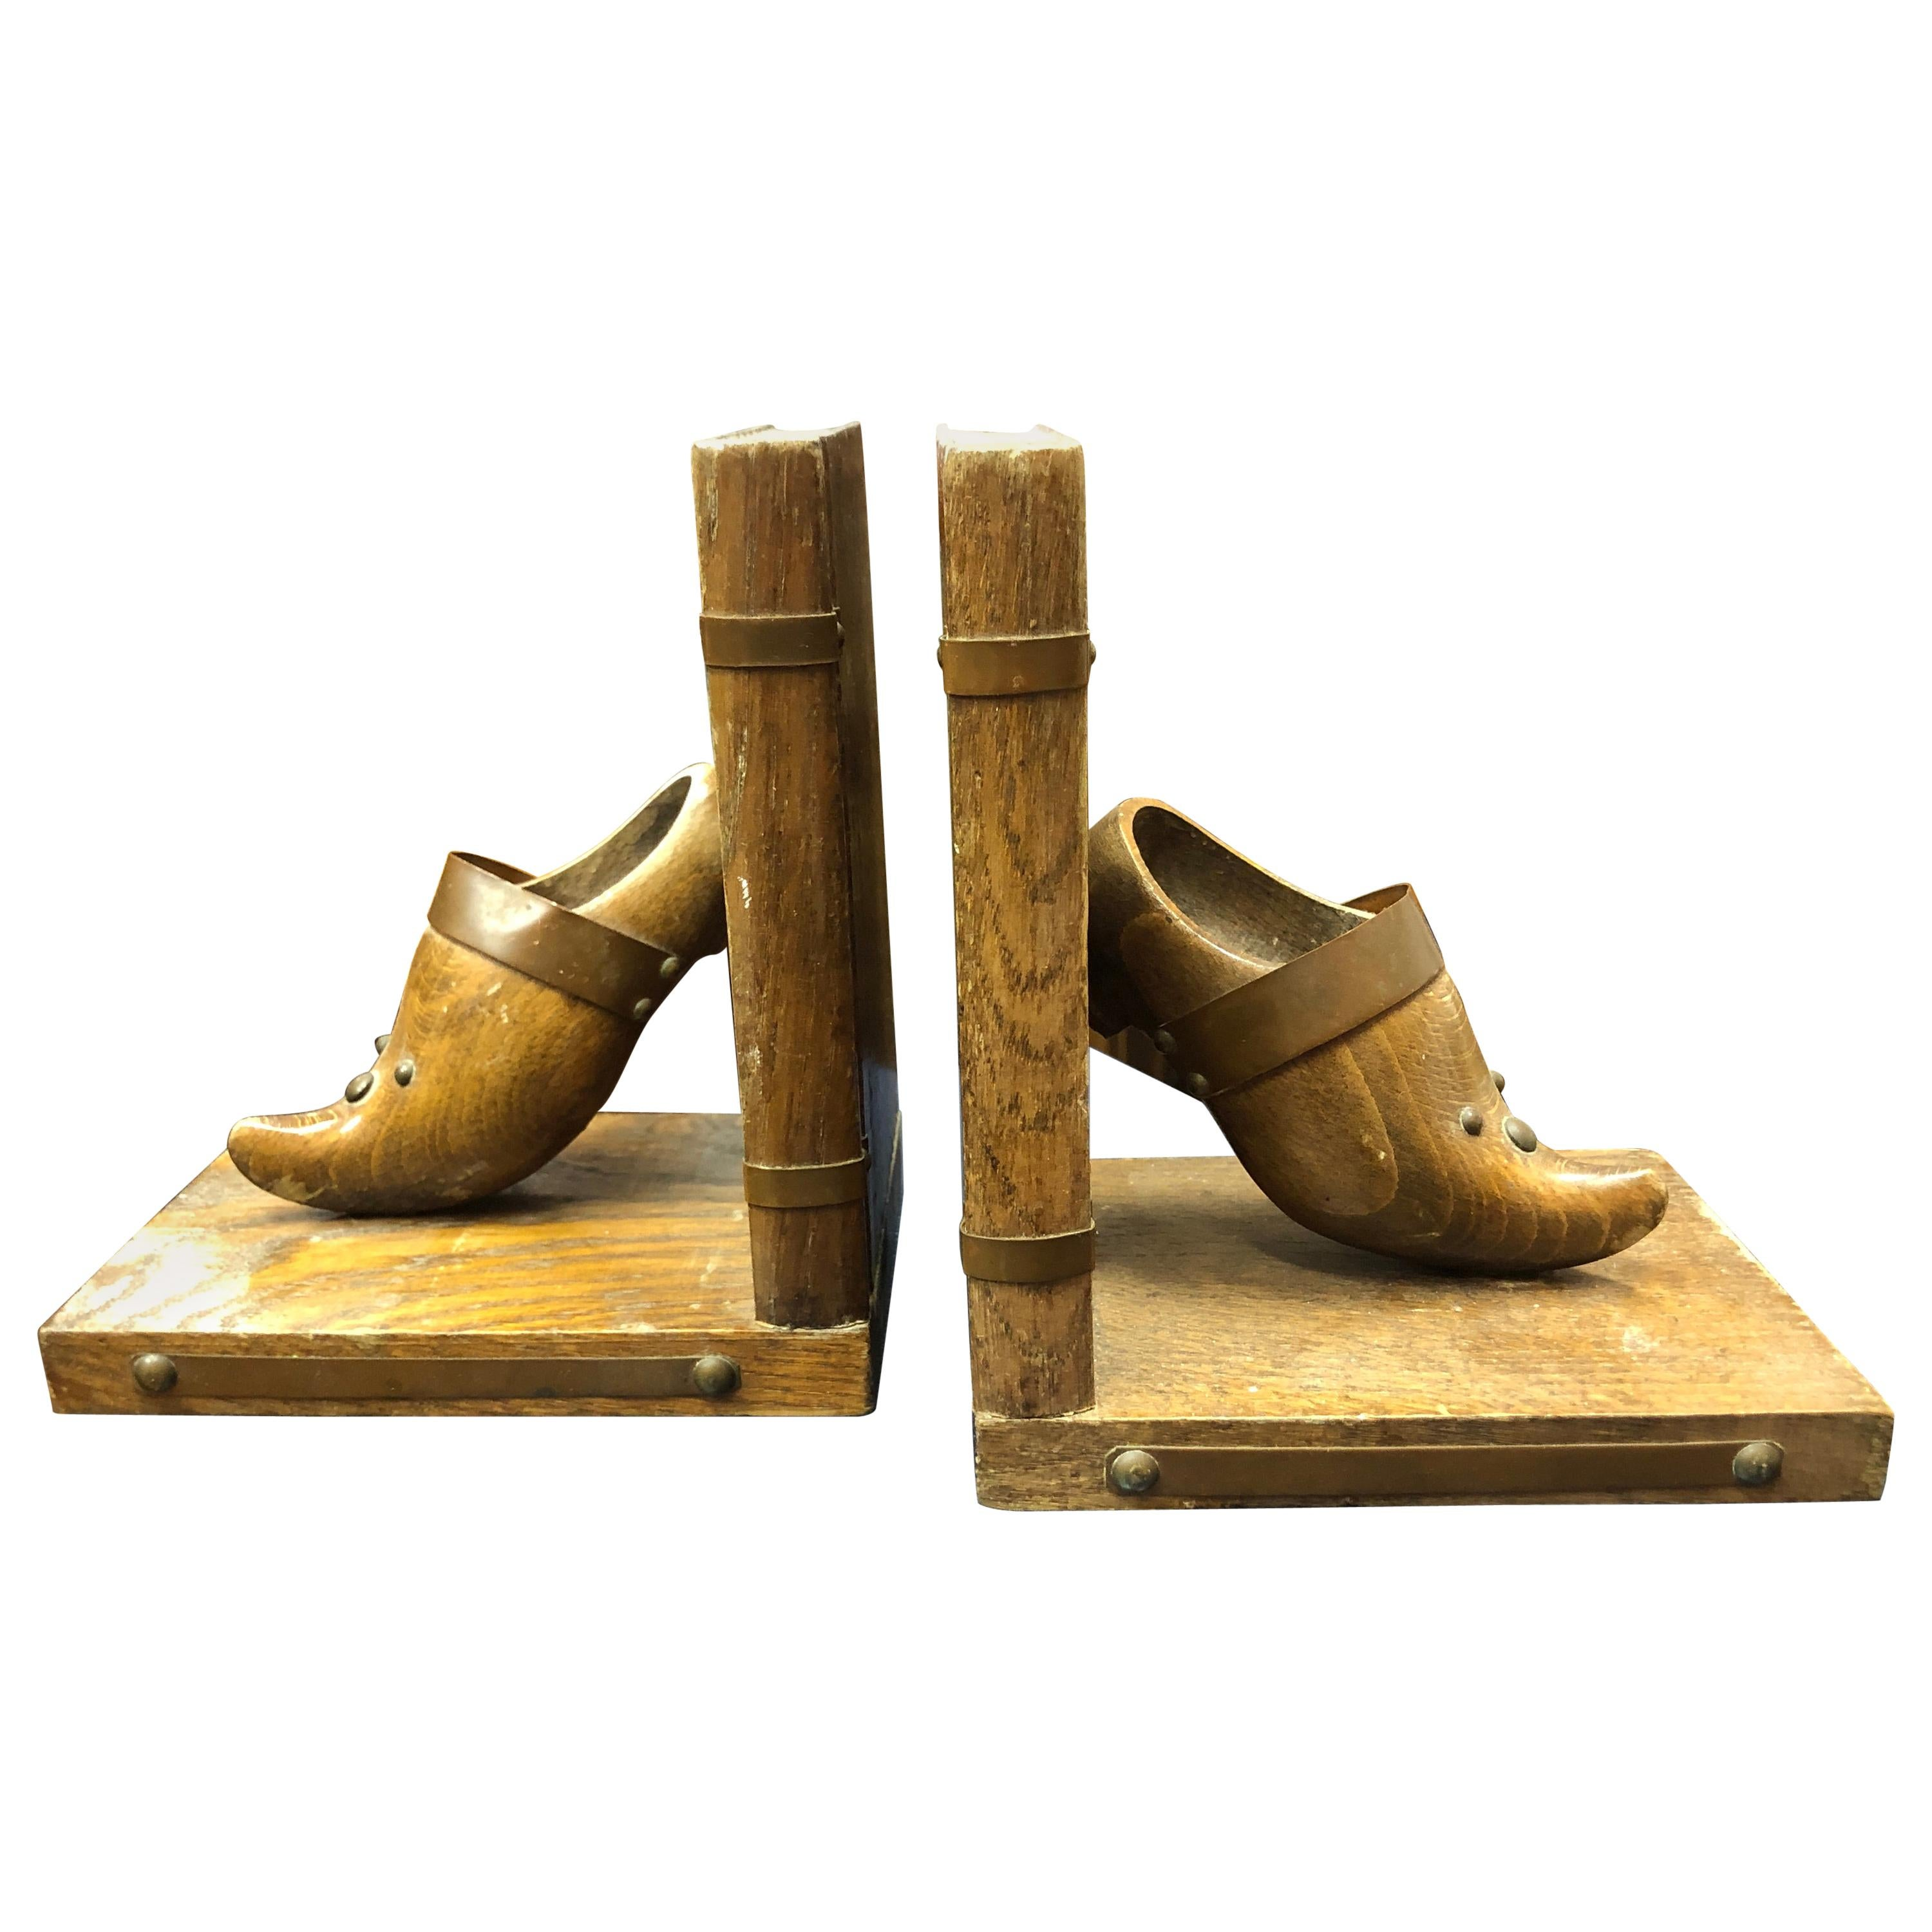 20th Century French Pair of Wooden Bookstands in Clogs Shape